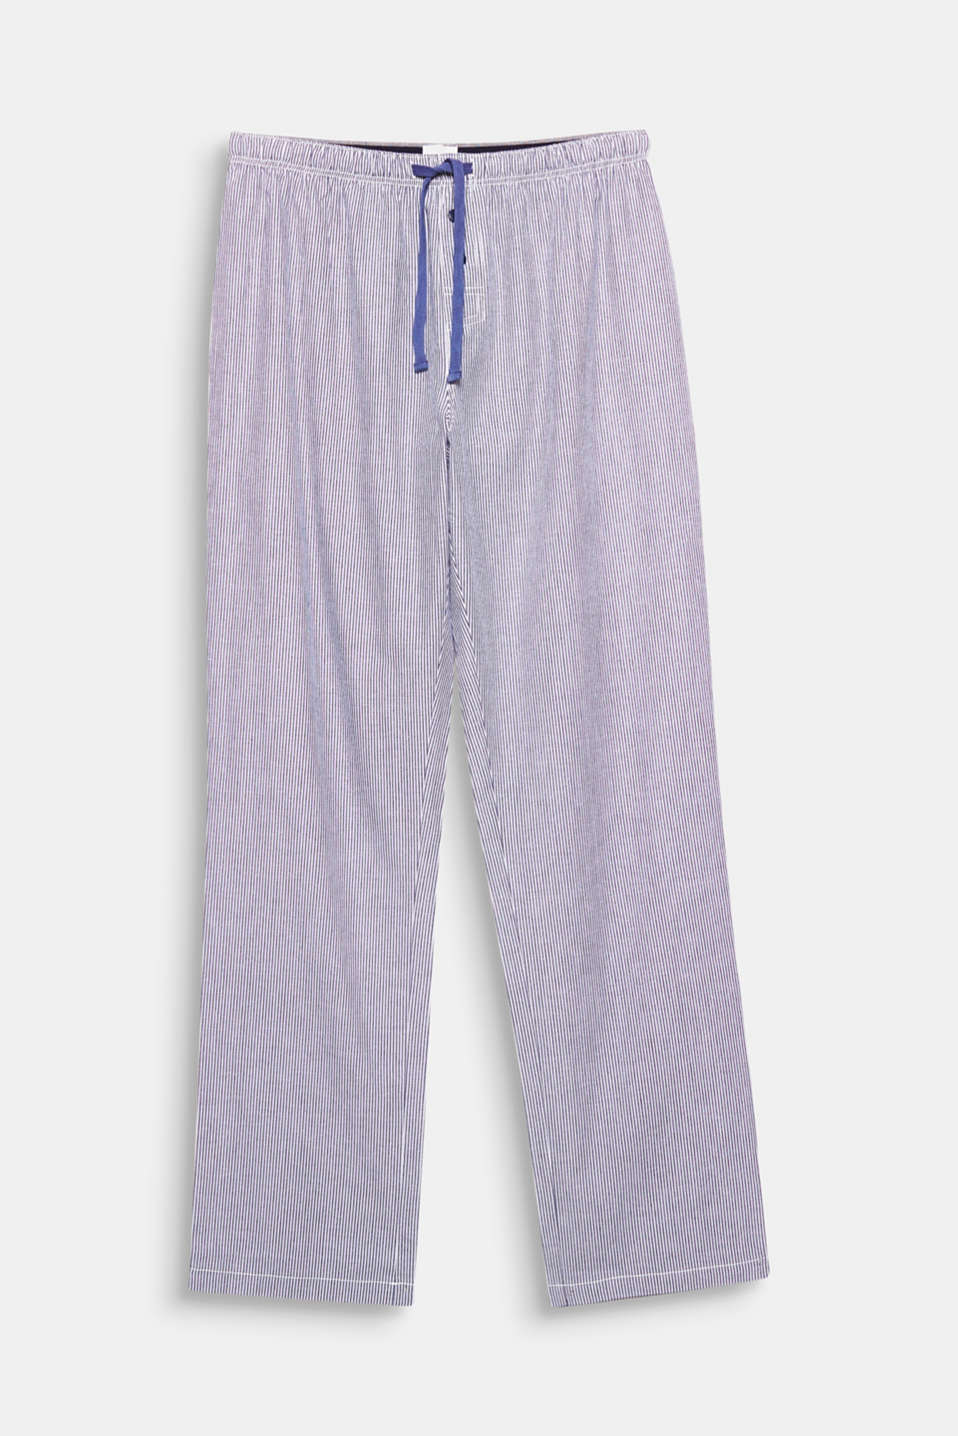 These woven bottom in pure cotton with a fine striped pattern are casual and comfy!